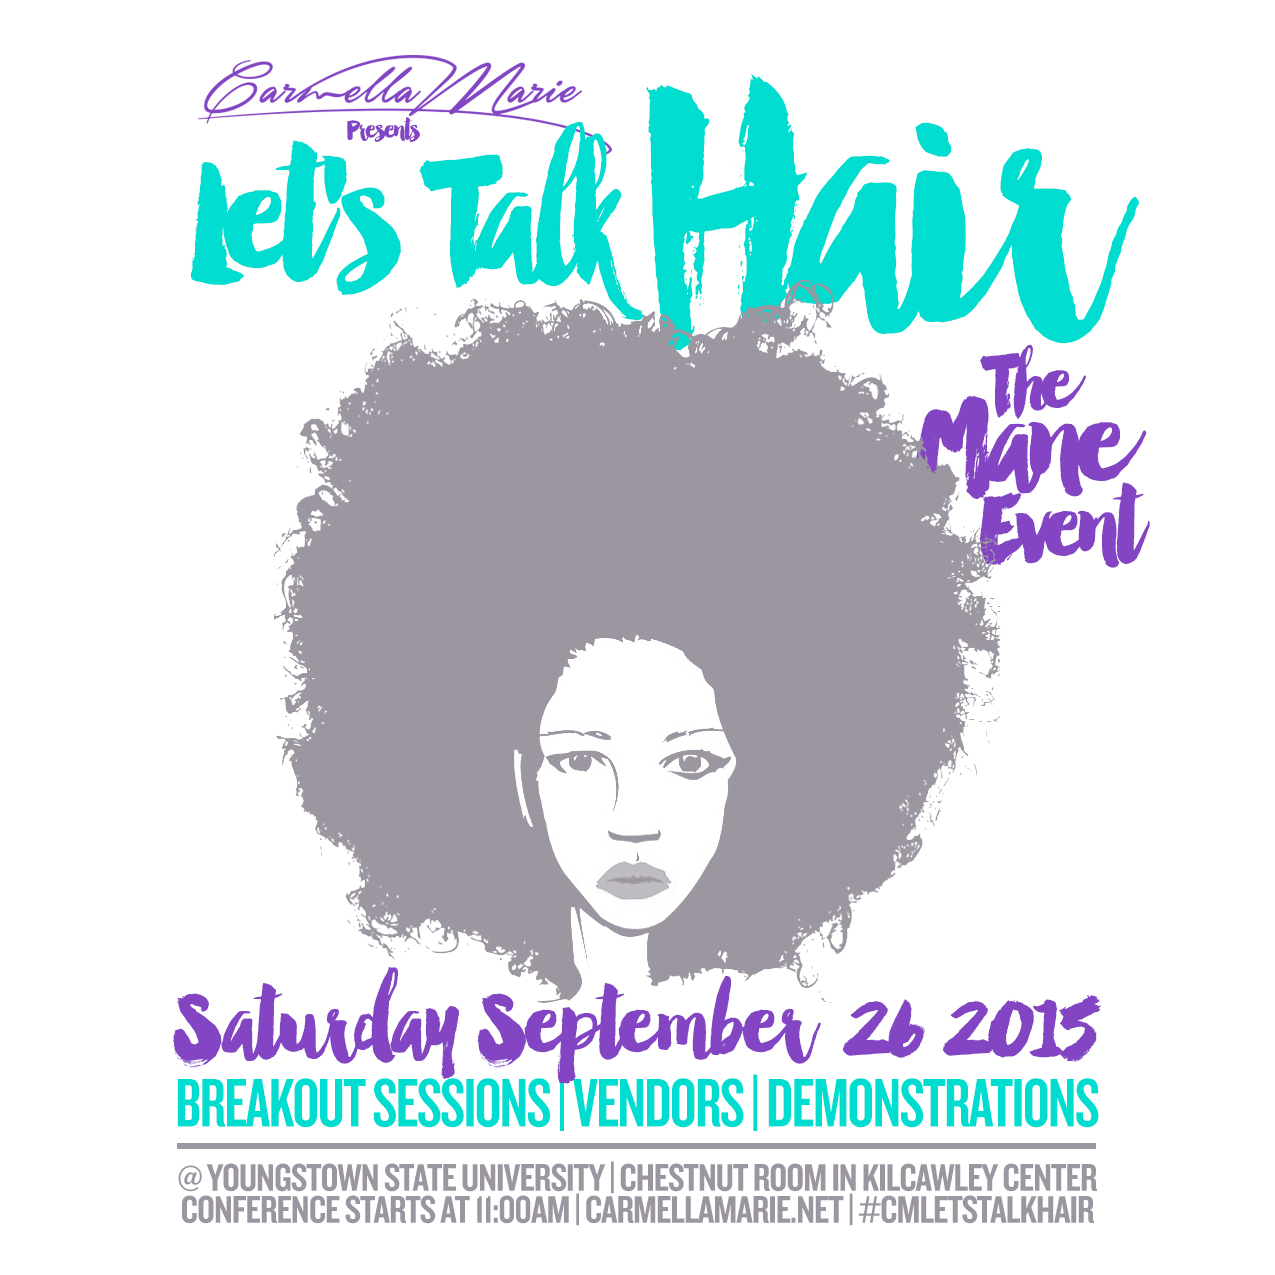 Carmella Marie's Let's Talk Hair The Mane Event at Youngstown State University